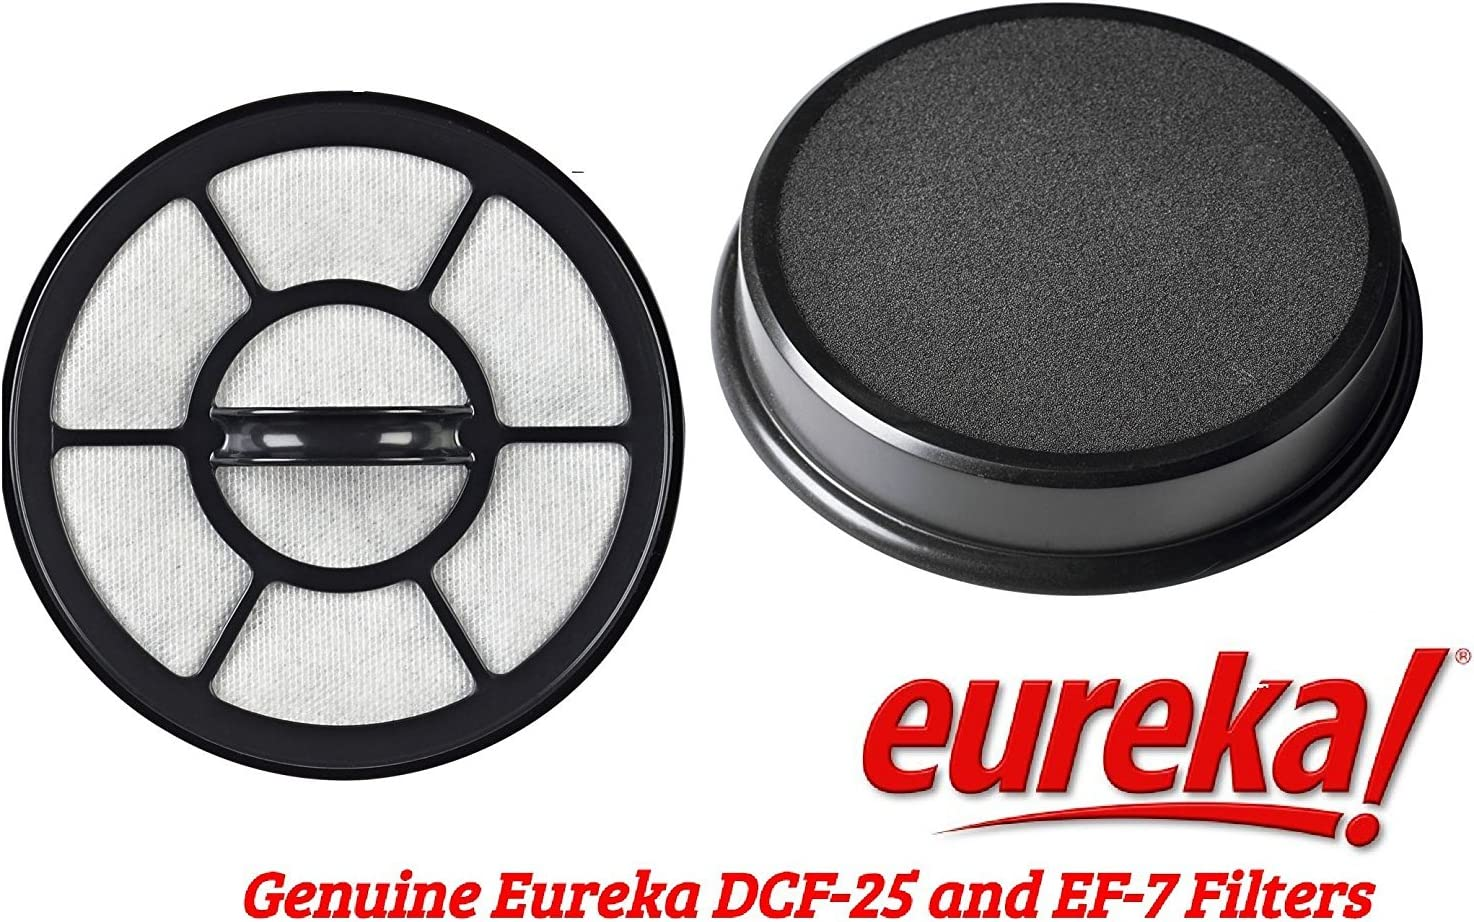 Eureka AirSpeed Exact Bagless Upright Filter Kit For Models AS3001A, AS3008A, AS3011A, AS3020A.